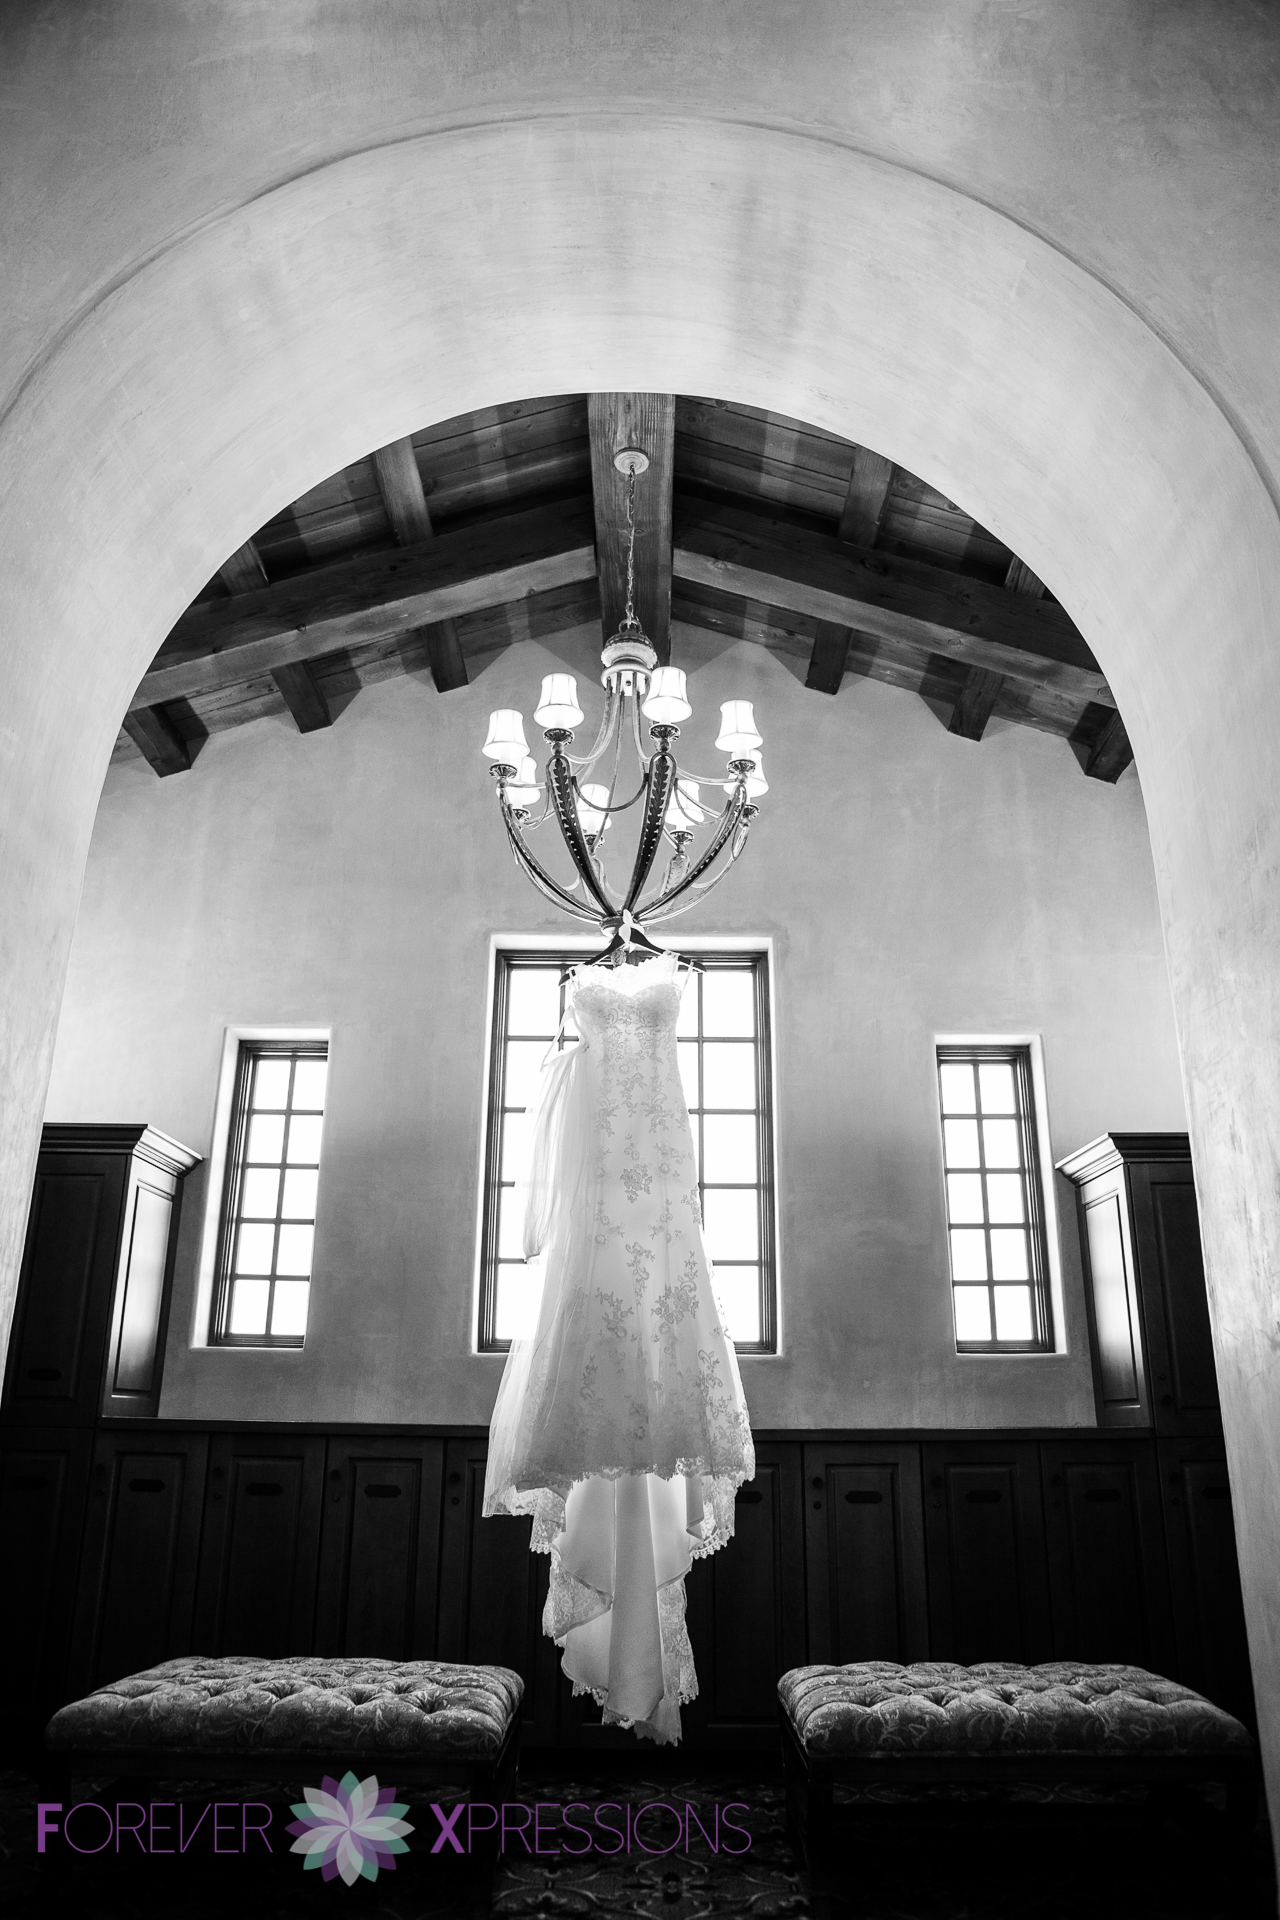 Forever_Xpressions_Wedding_Photography_Monteverde_Bella_Collina-5203